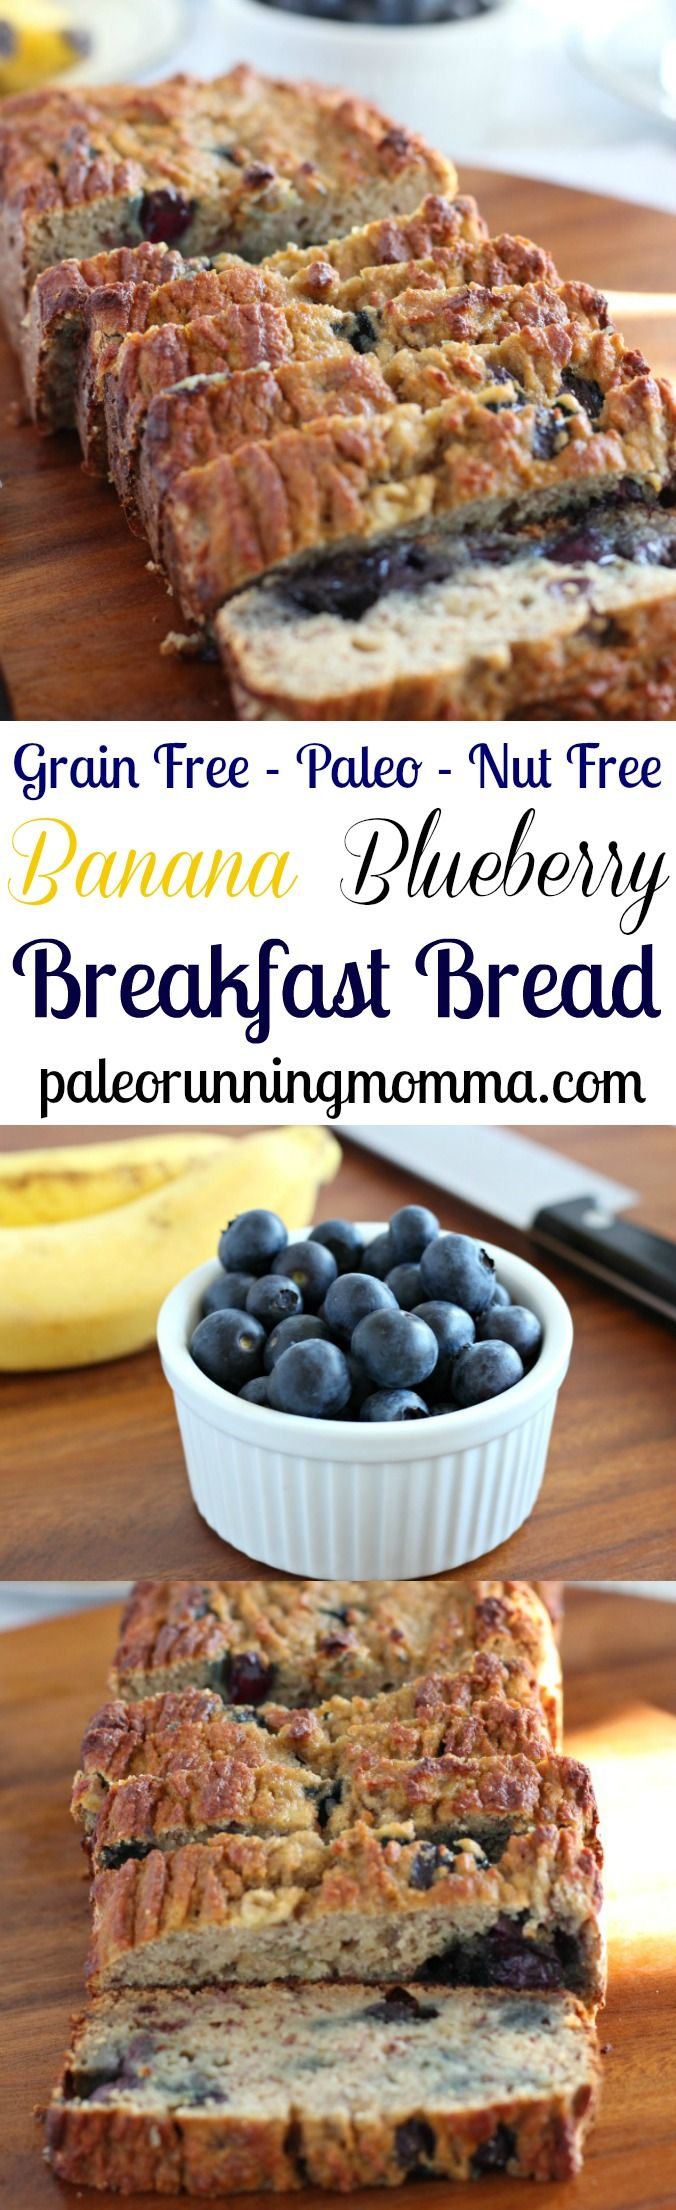 Banana Blueberry Breakfast Bread {Paleo & Nut Free} #justeatrealfood #paleorunningmomma